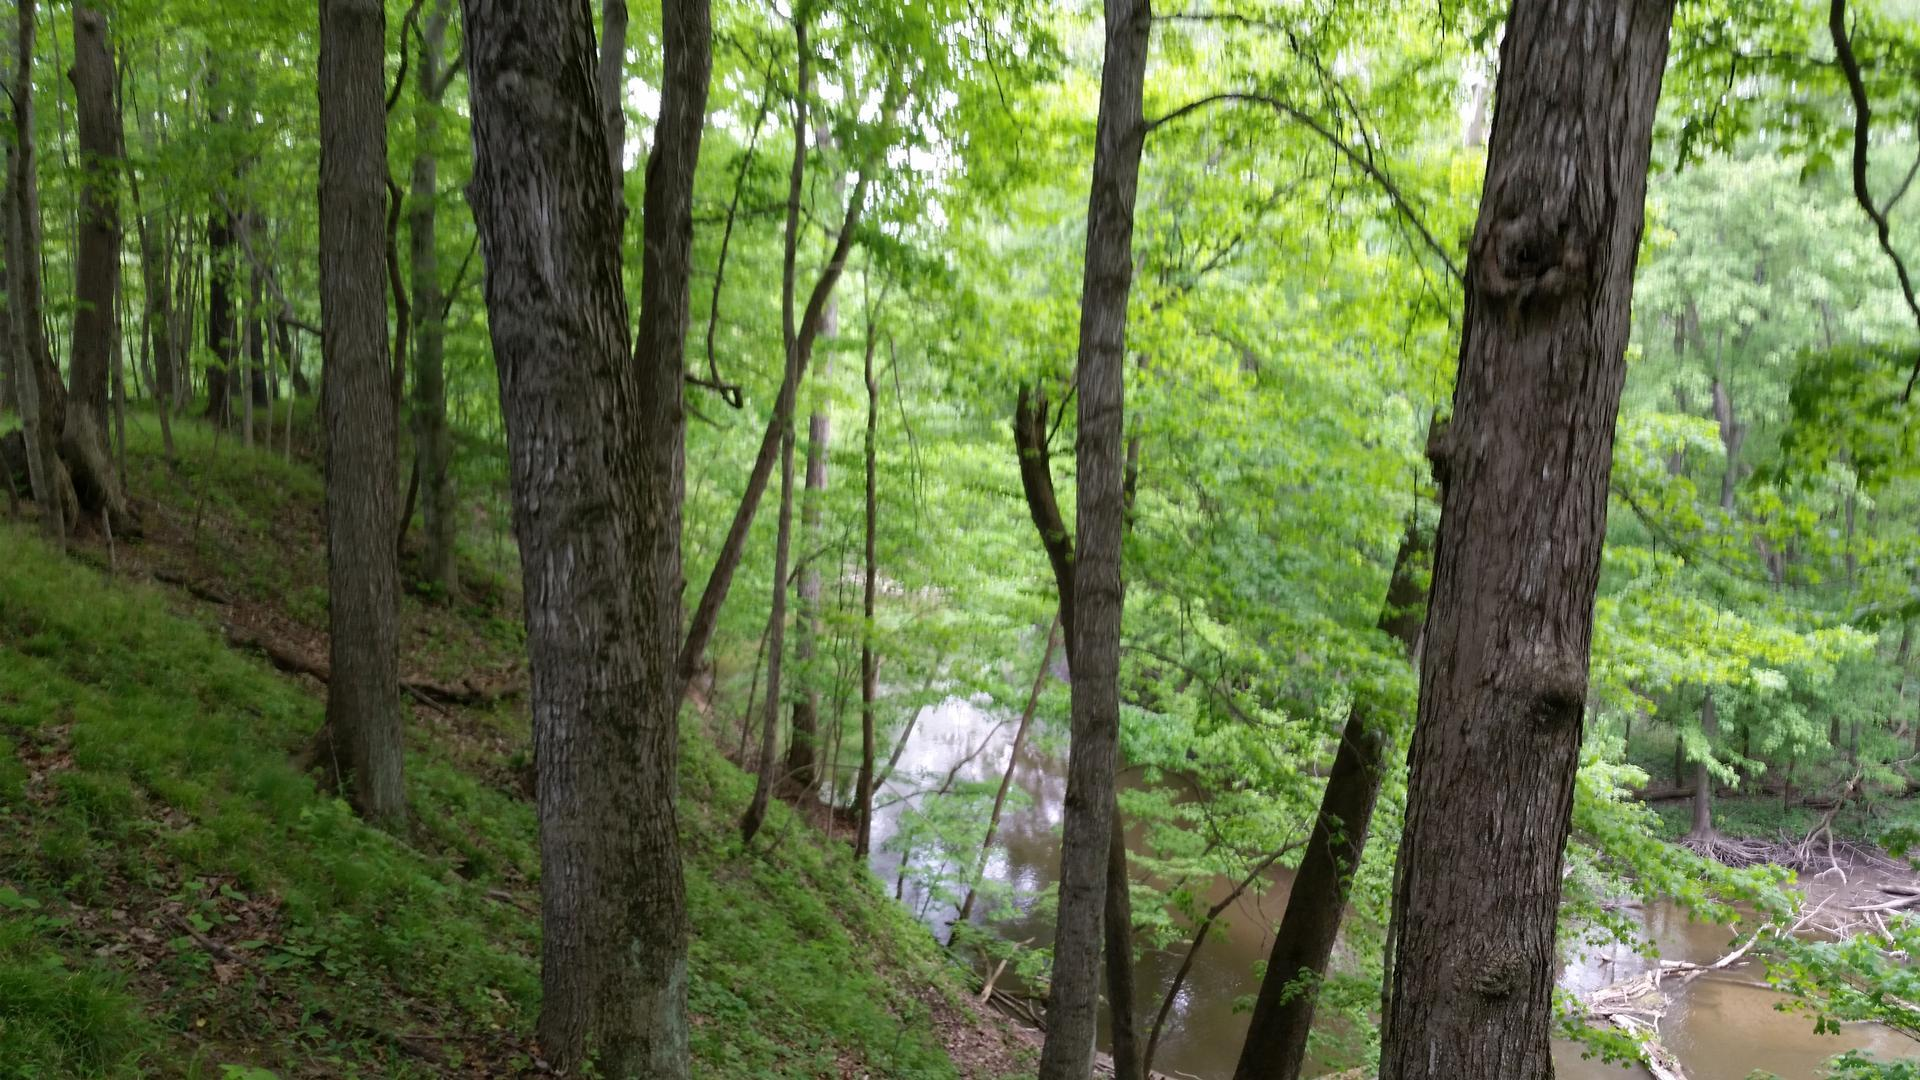 McCulley-Bastian Nature Sanctuary